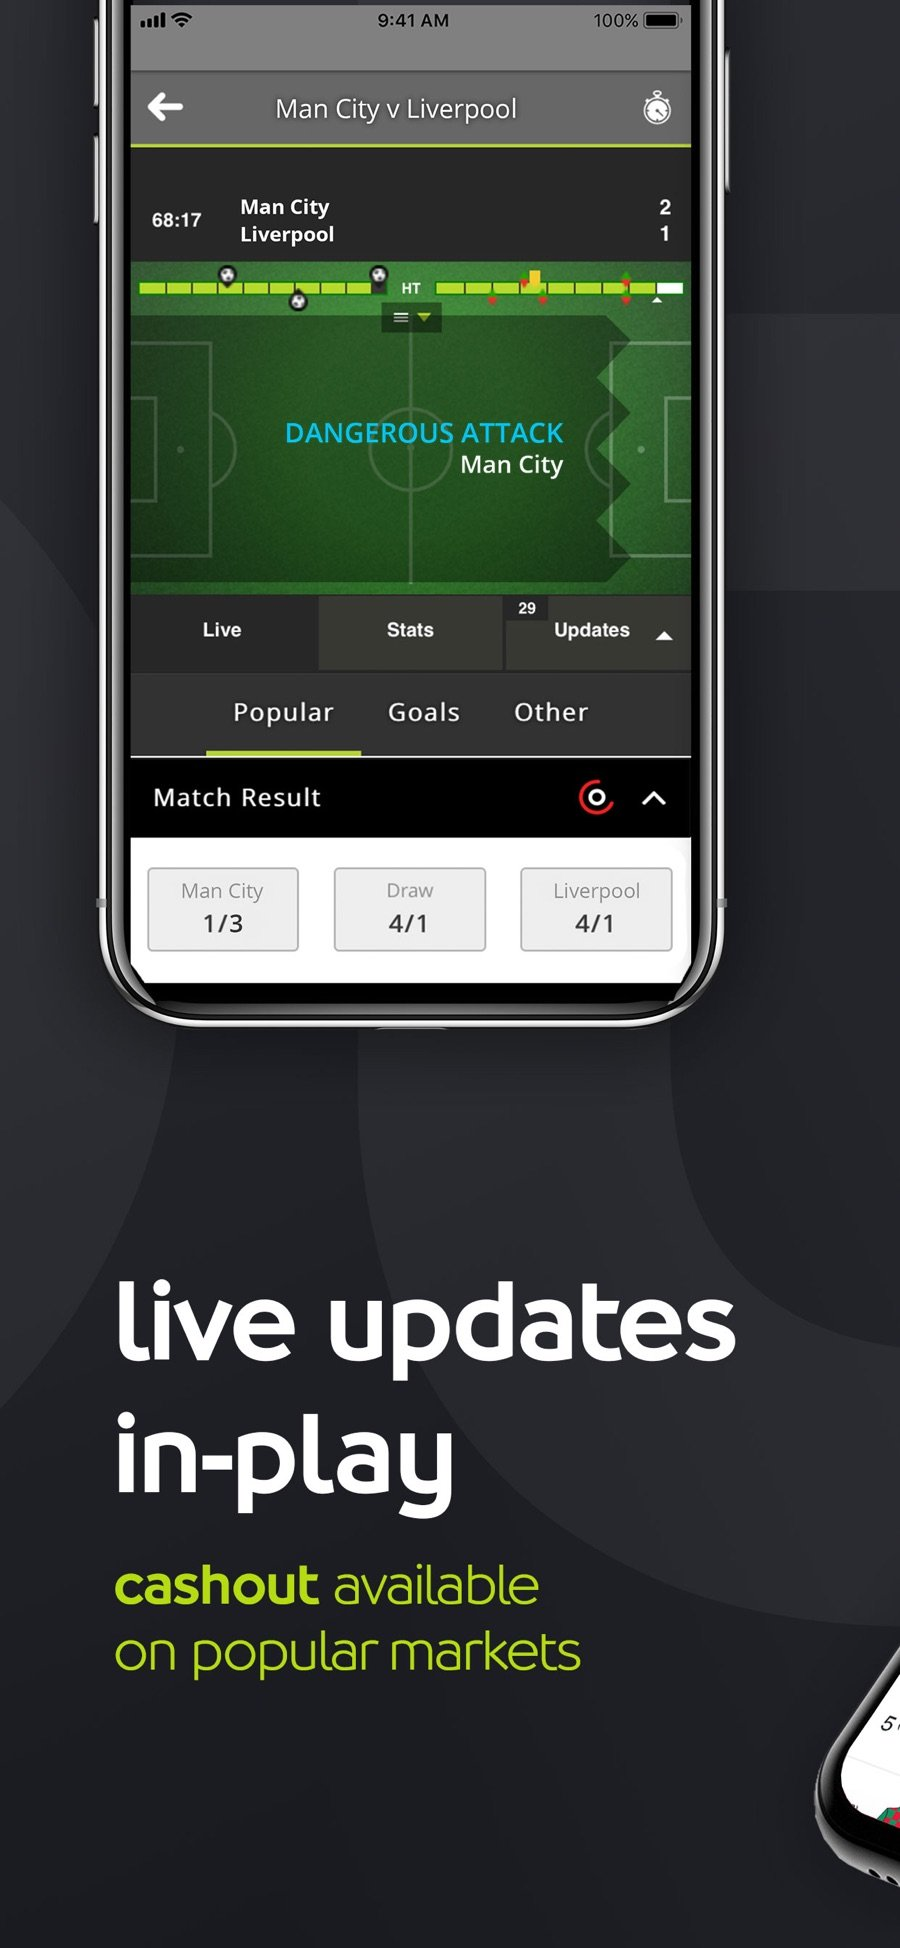 Totesport mobile betting apps the sack race oddschecker betting